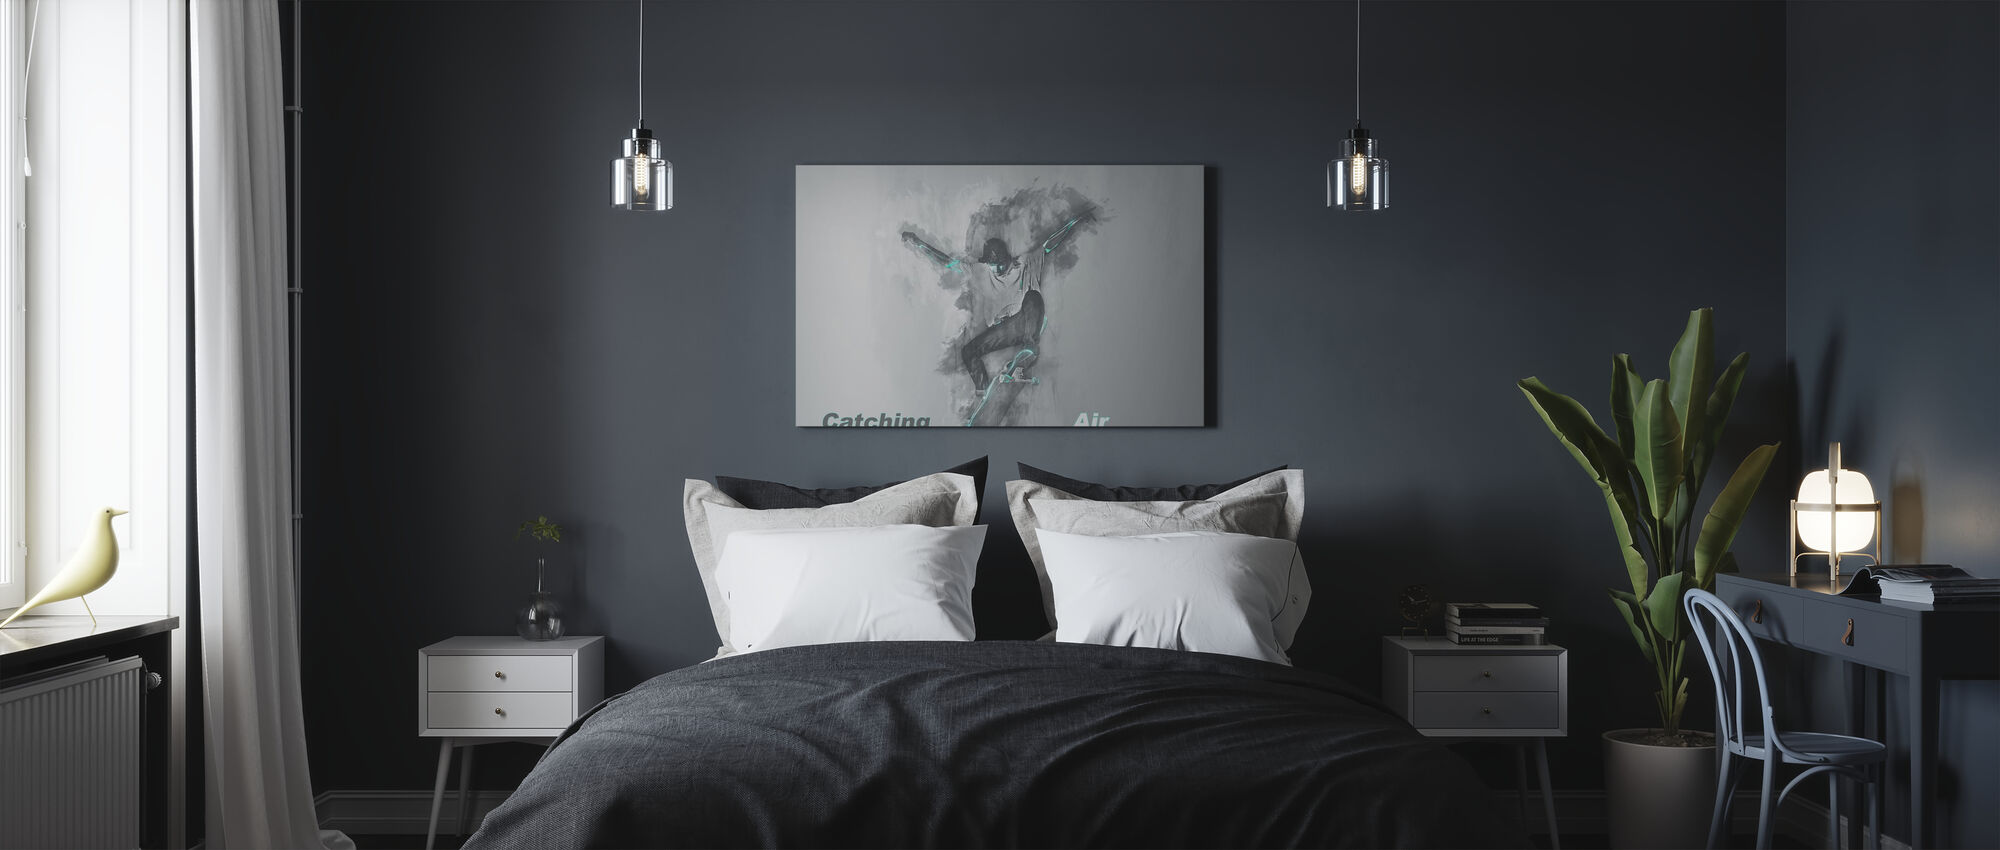 Catching Air - Canvas print - Bedroom